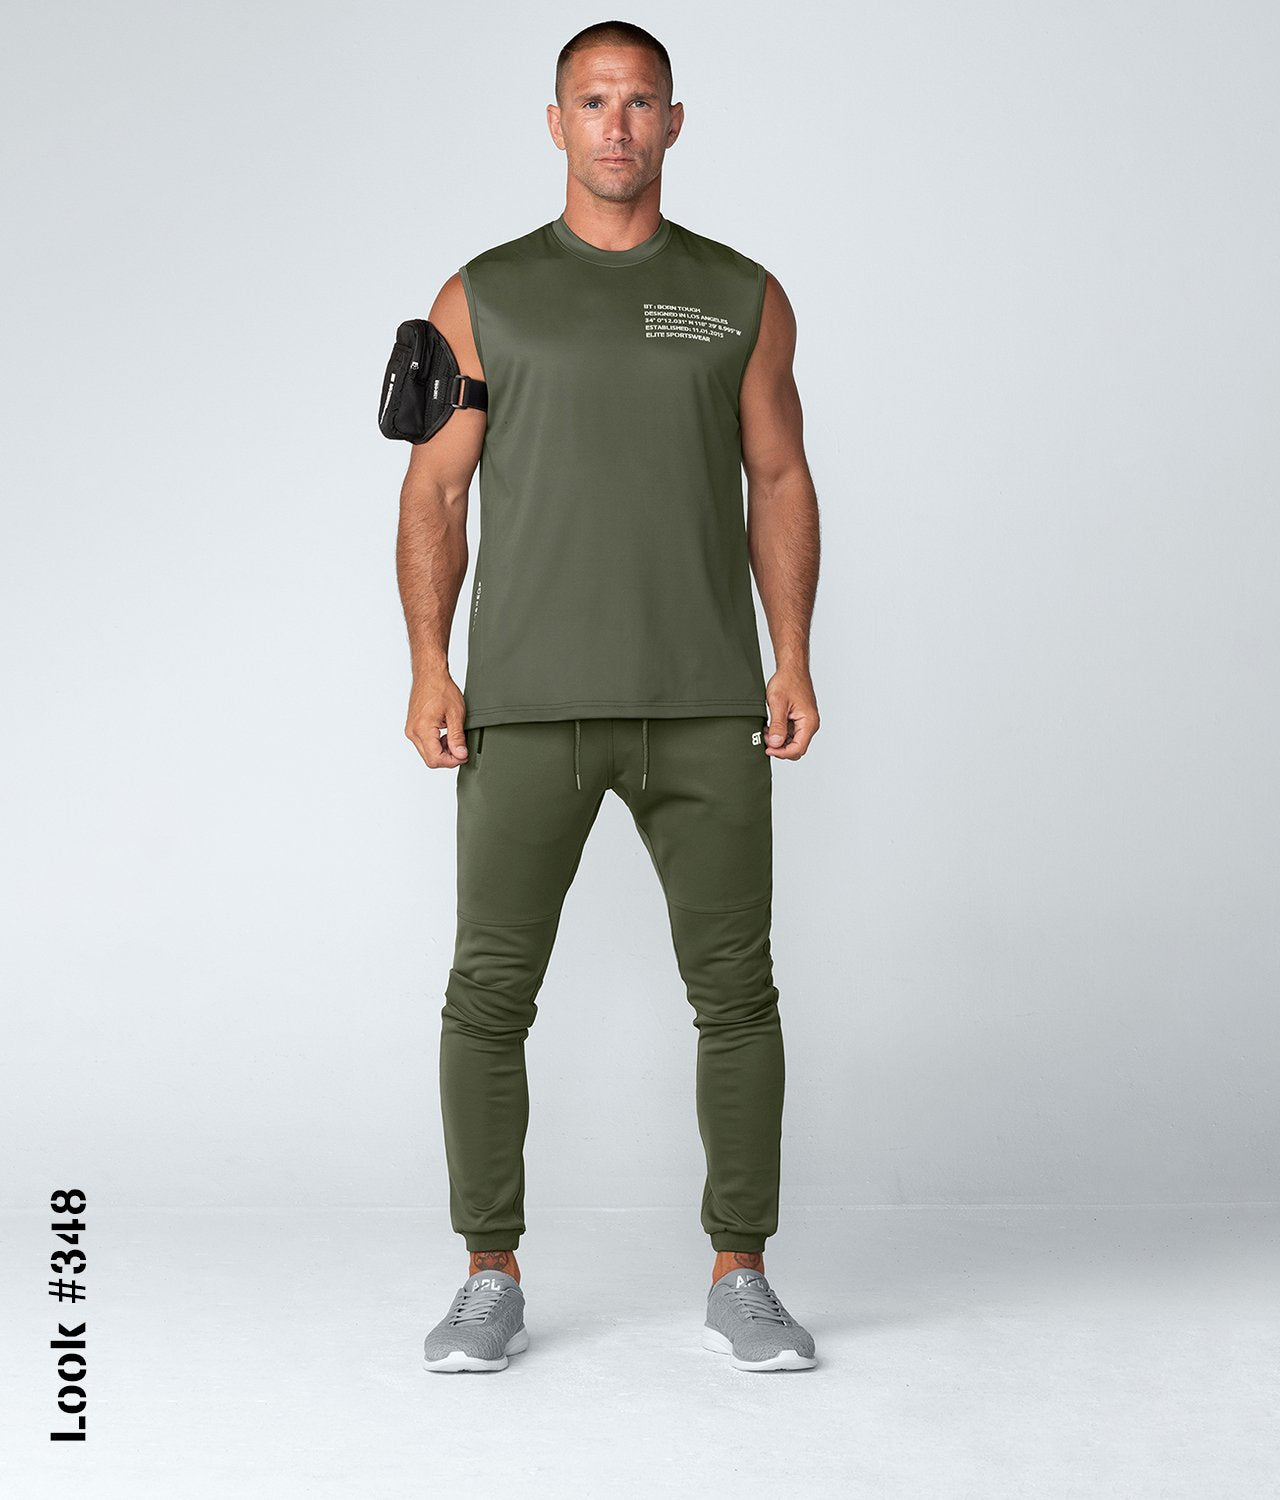 Born Tough United Kingdom Momentum 4-way Stretched Sleeveless Fitted Tee Gym Workout Shirt For Men Military Green